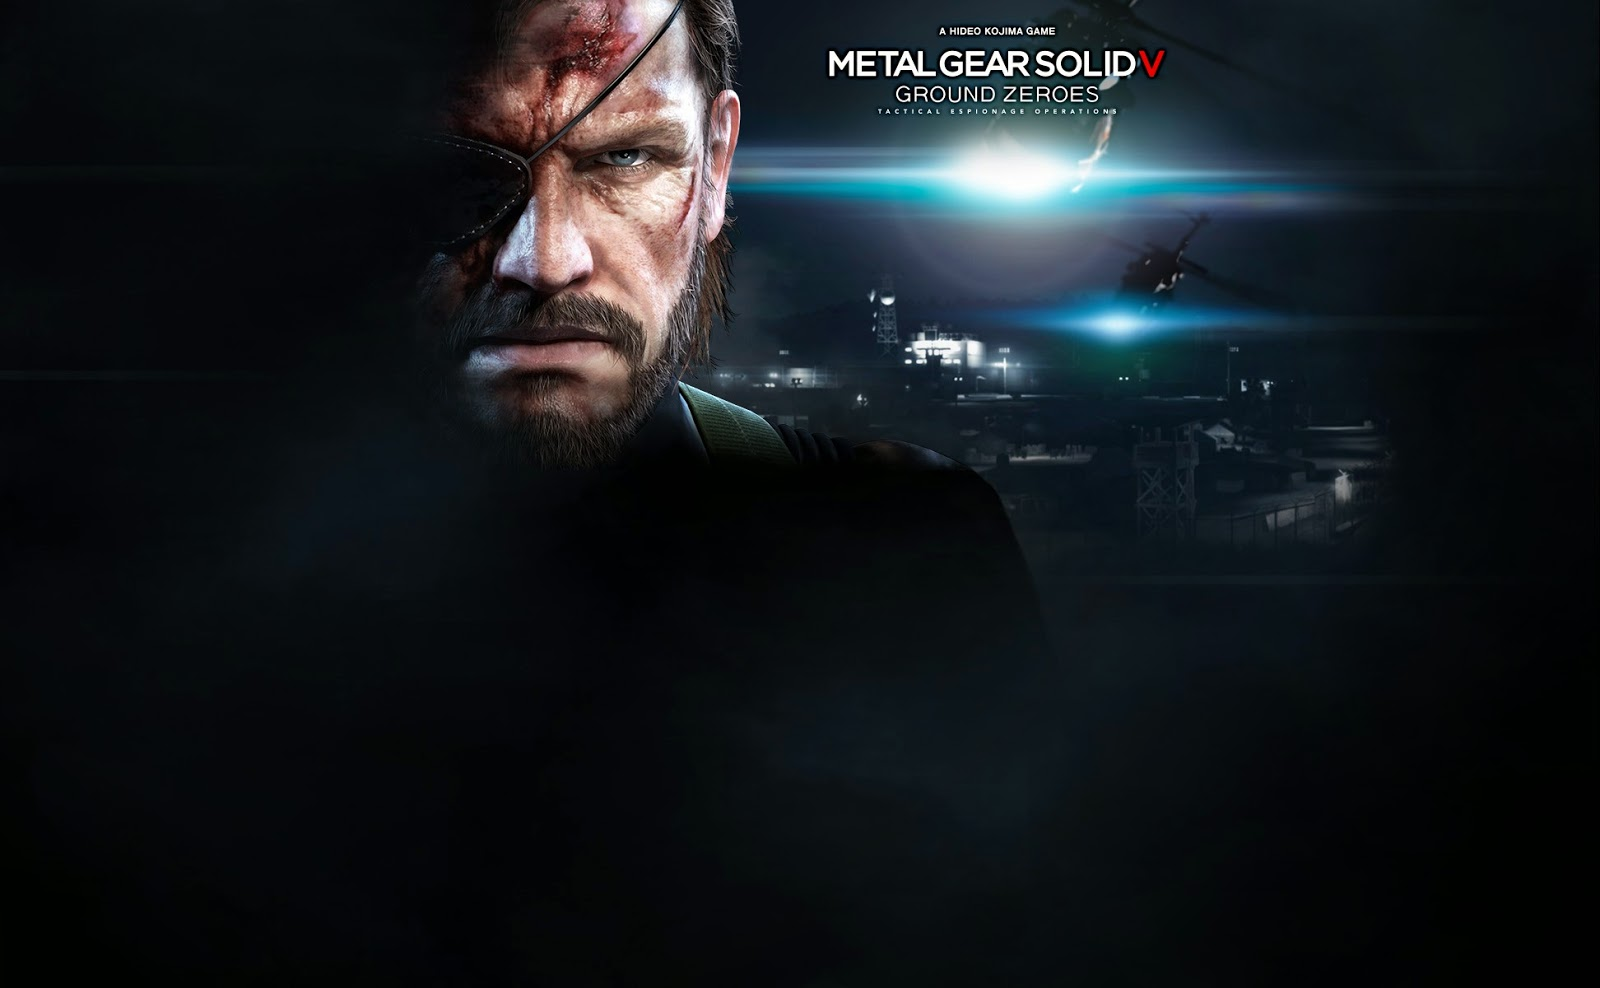 Metal Gear Solid Ground Zeroes Video Game 4k Hd Desktop: Comic Books, Movies, Games Blog Everything Related To